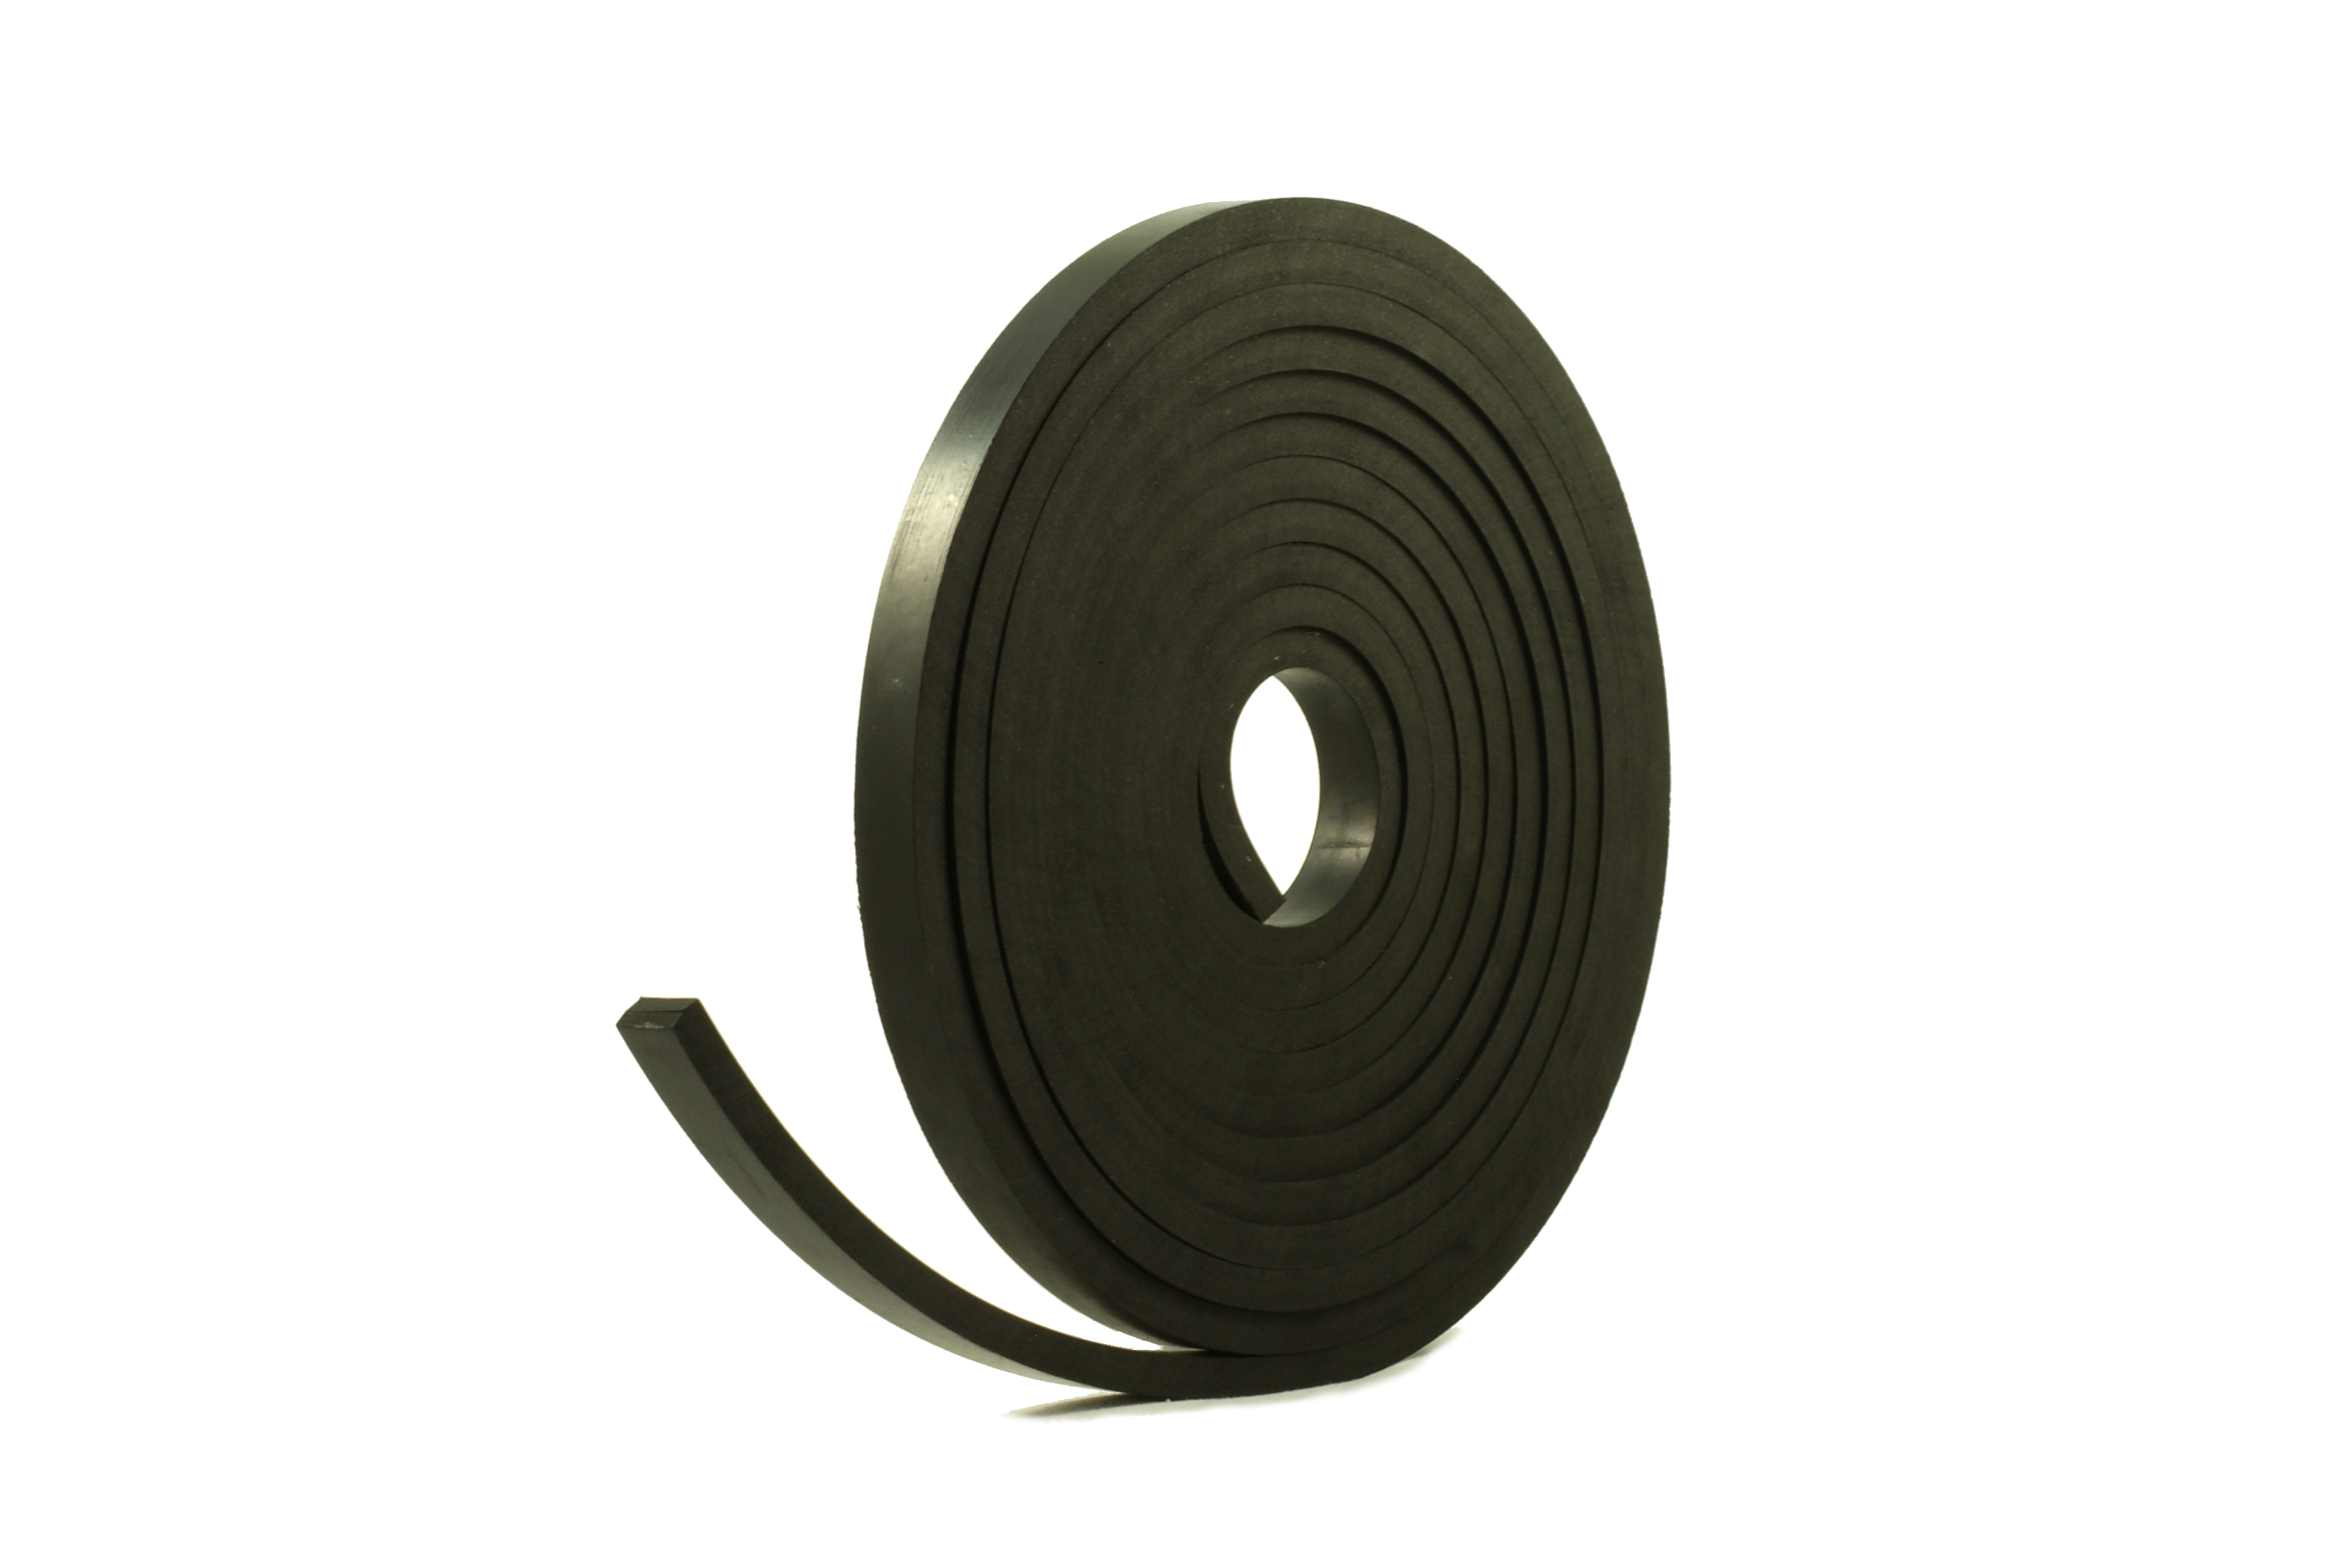 Rubber Strip 20mm Wide x 8mm Thick x 5m Long Solid Neoprene Black Rubber Strip